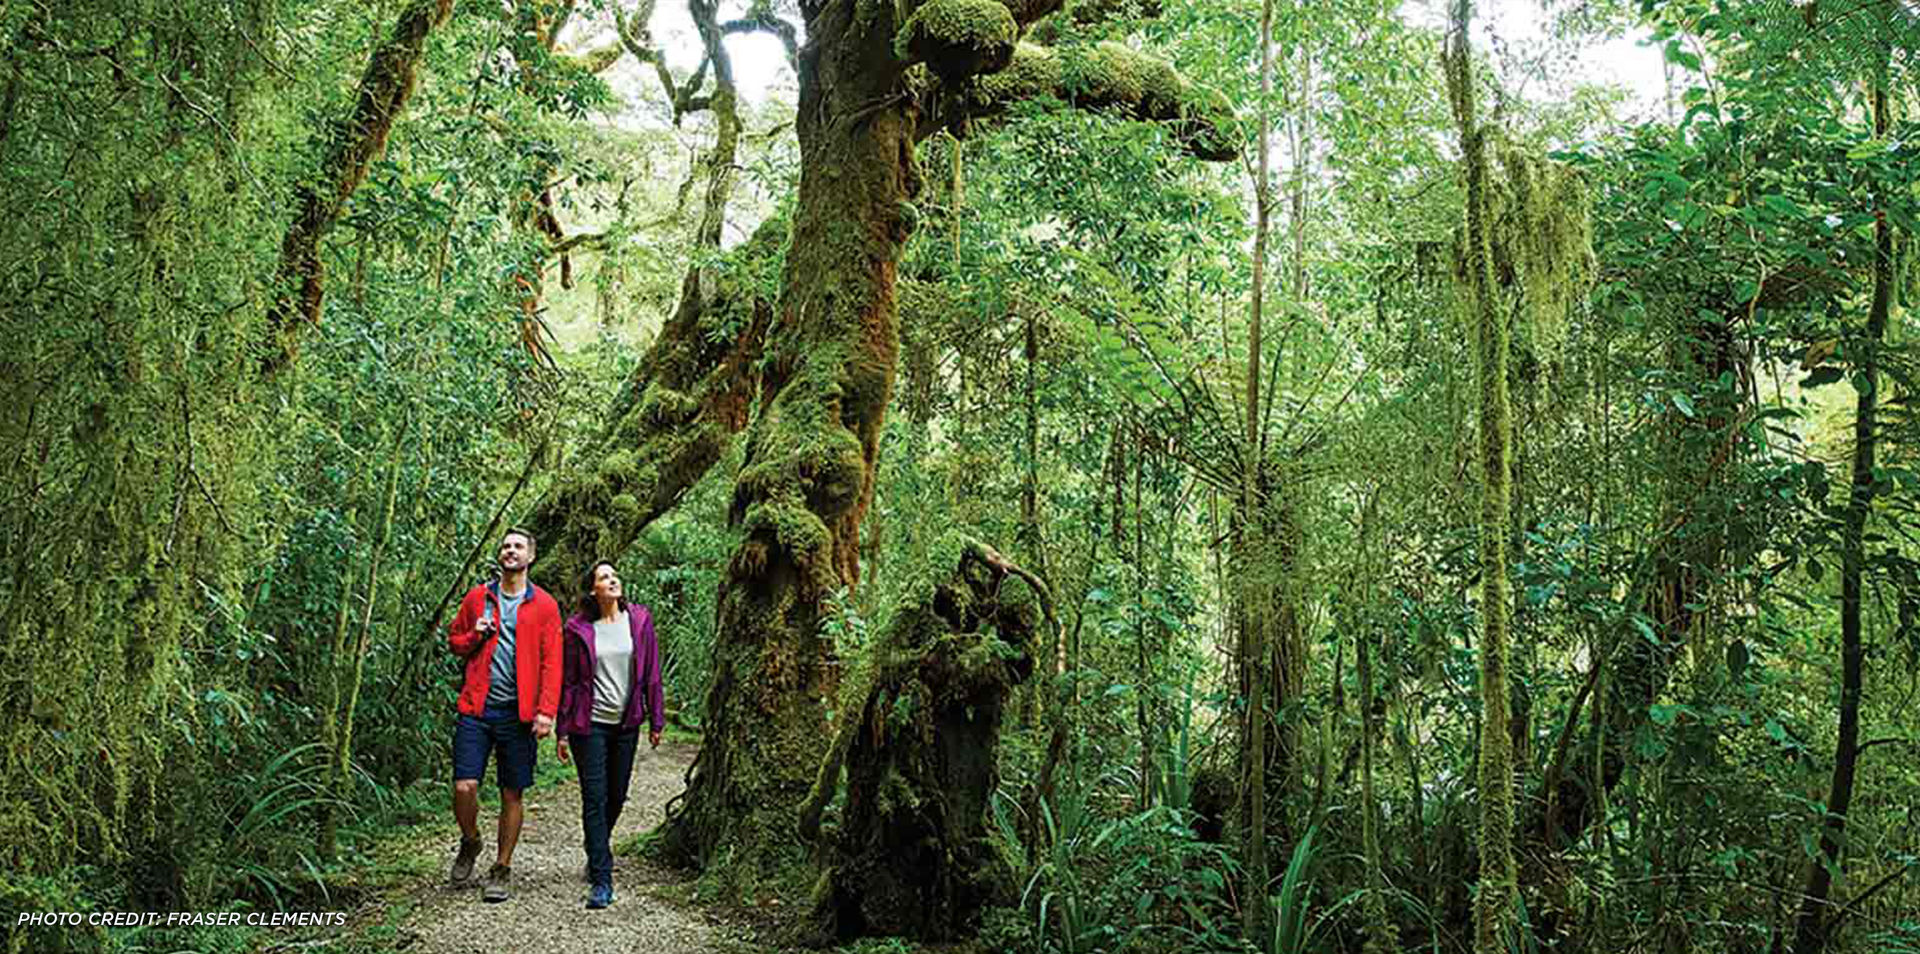 New Zealand's Queen Charlotte Track & Marlborough Sounds